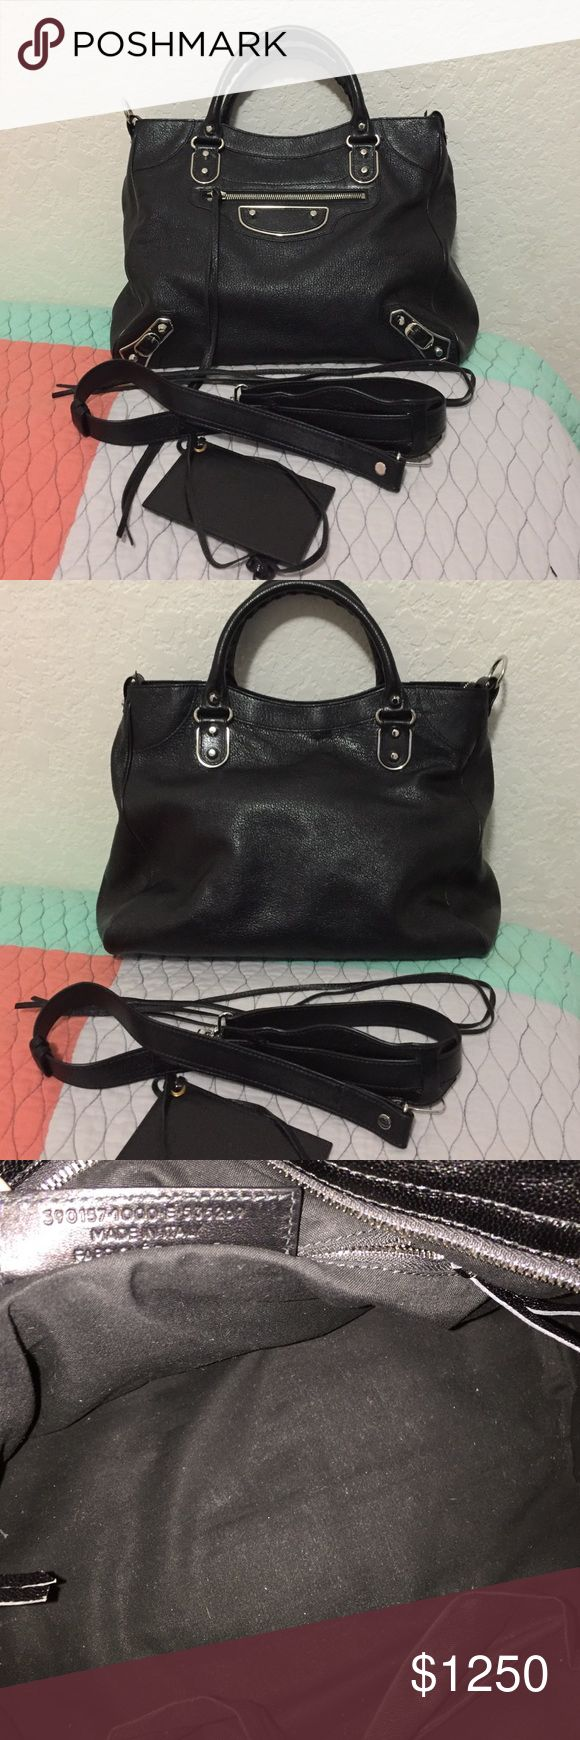 Balenciaga Metallic Edge Classic Velo 💯 Authentic, gently used bag. With silver hardware. Minor scratches on the hardware. No cracks or tears. Interior has some dusts. Comes with strap, mirror, and 2 extra tassels. No dust bag or box. Balenciaga Bags Satchels